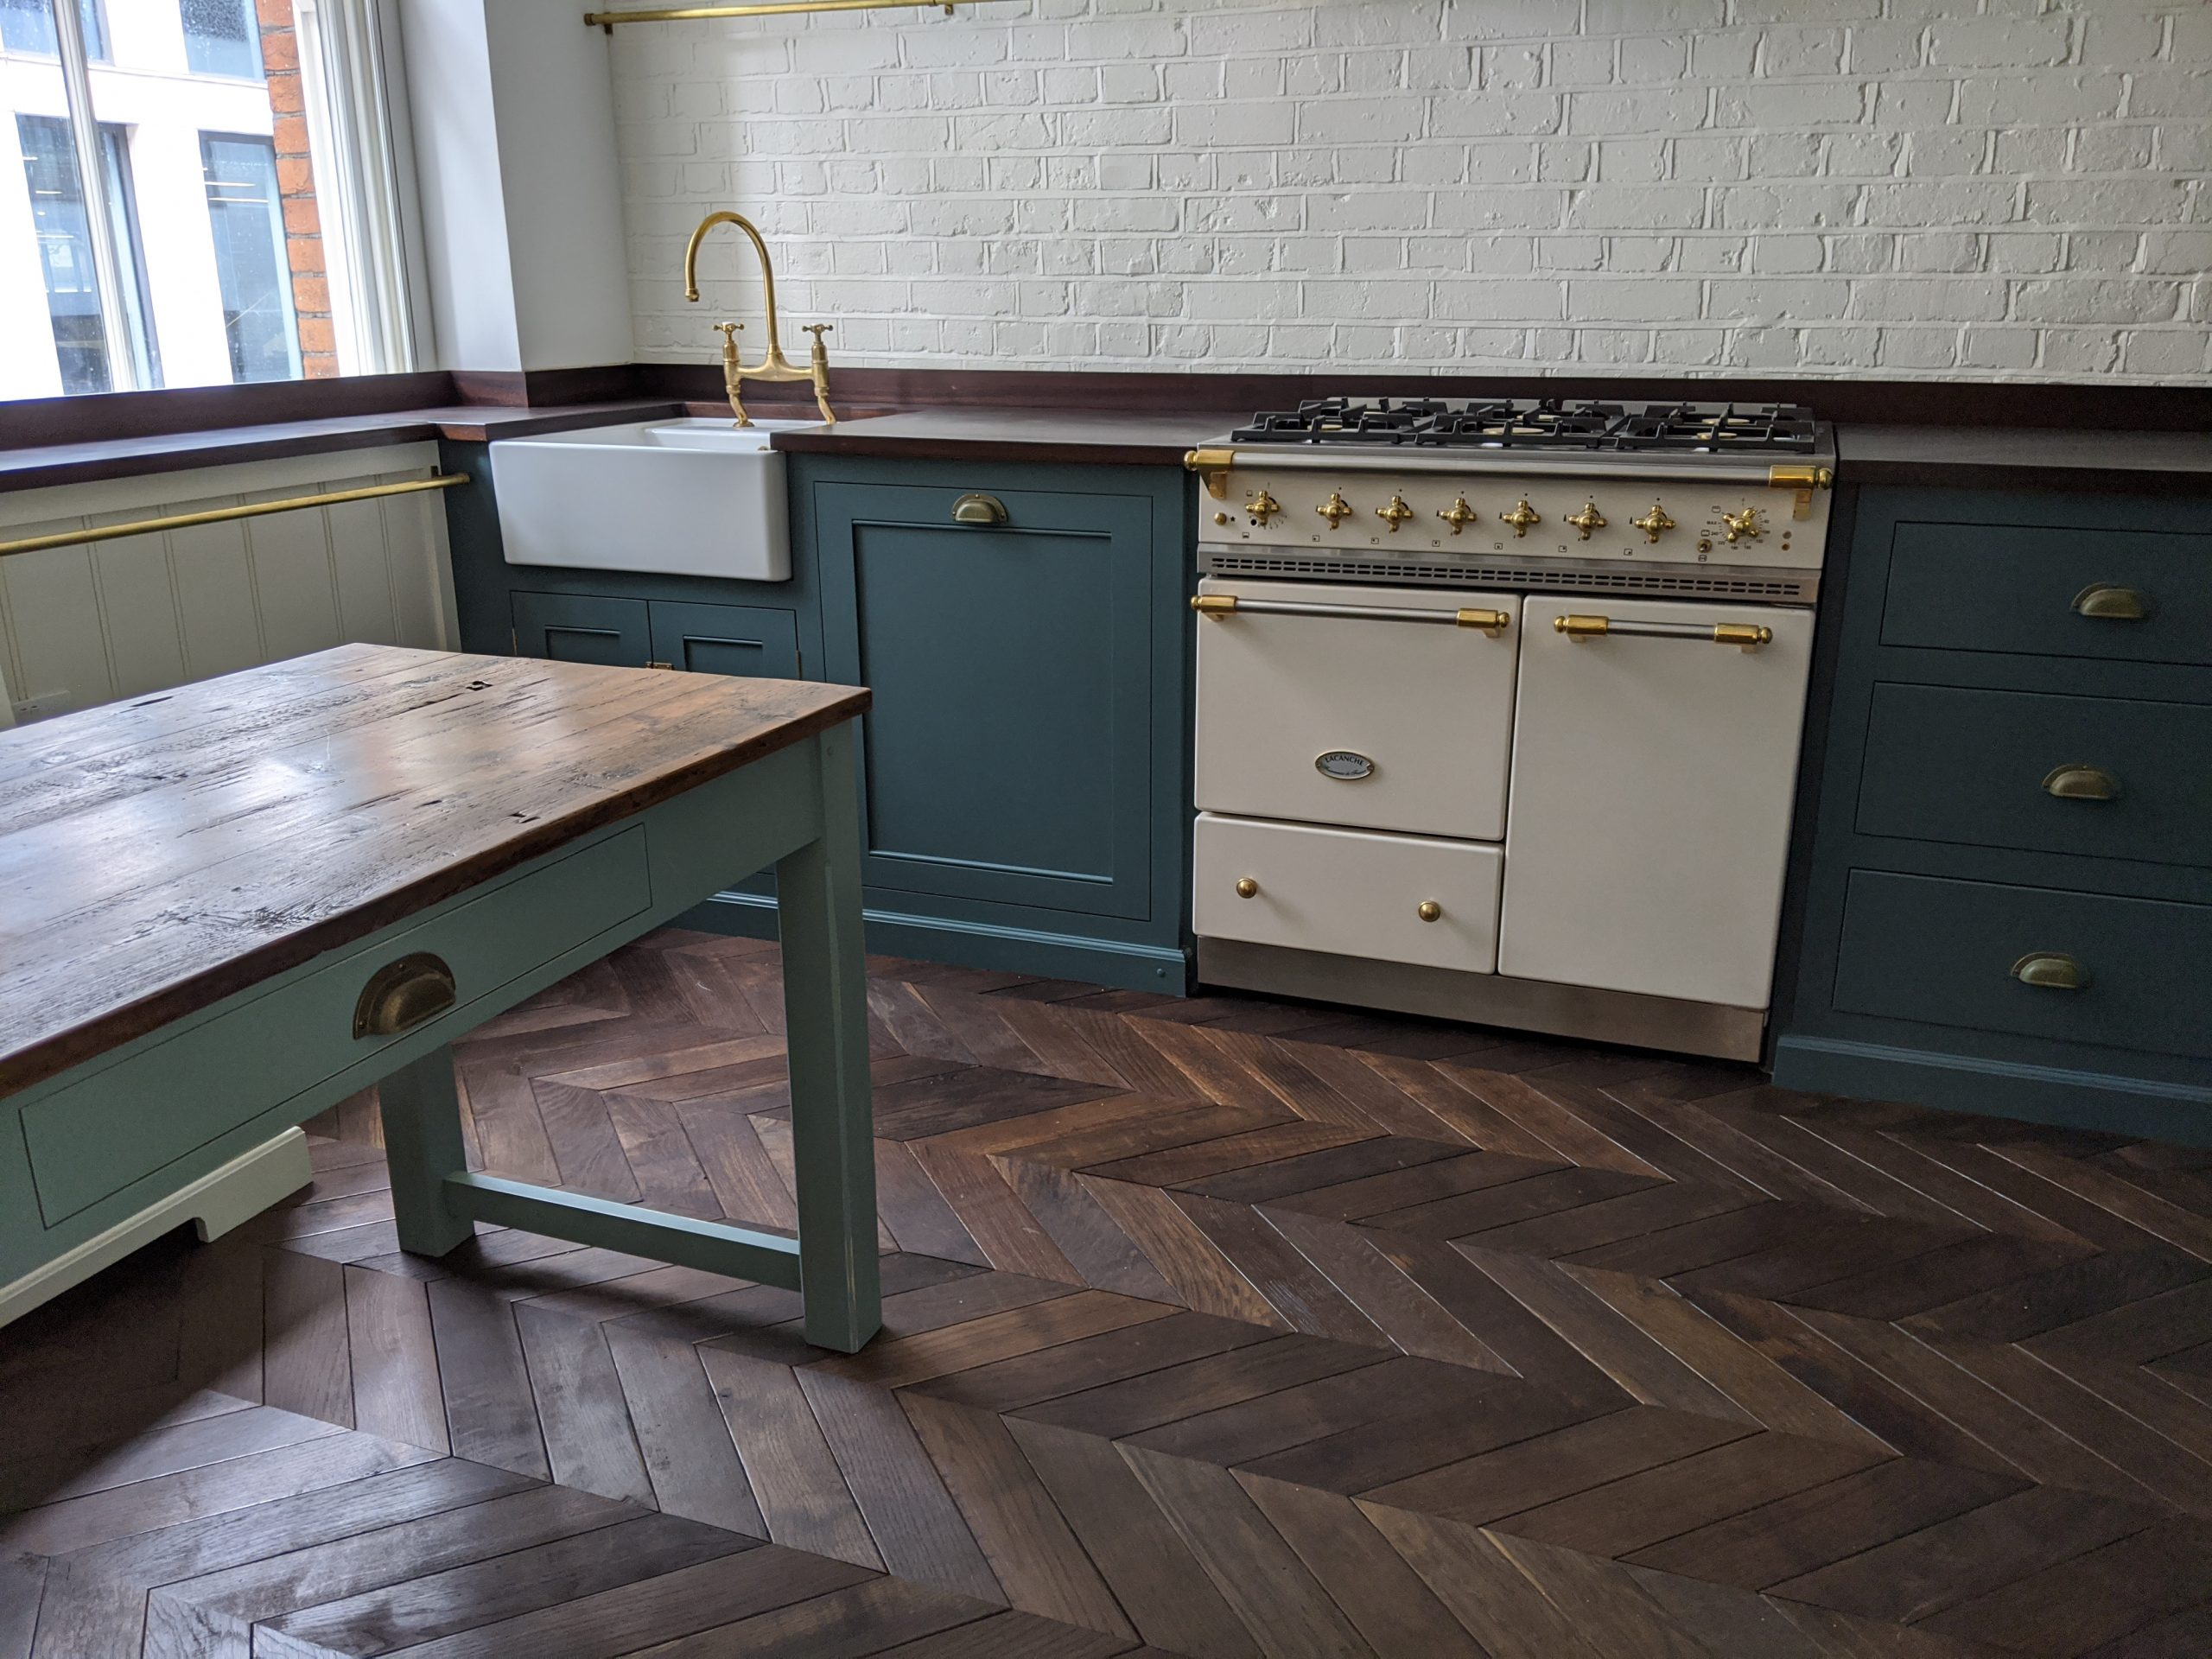 Parquet Flooring: What Exactly Is It? — How to Care for Parquet Flooring